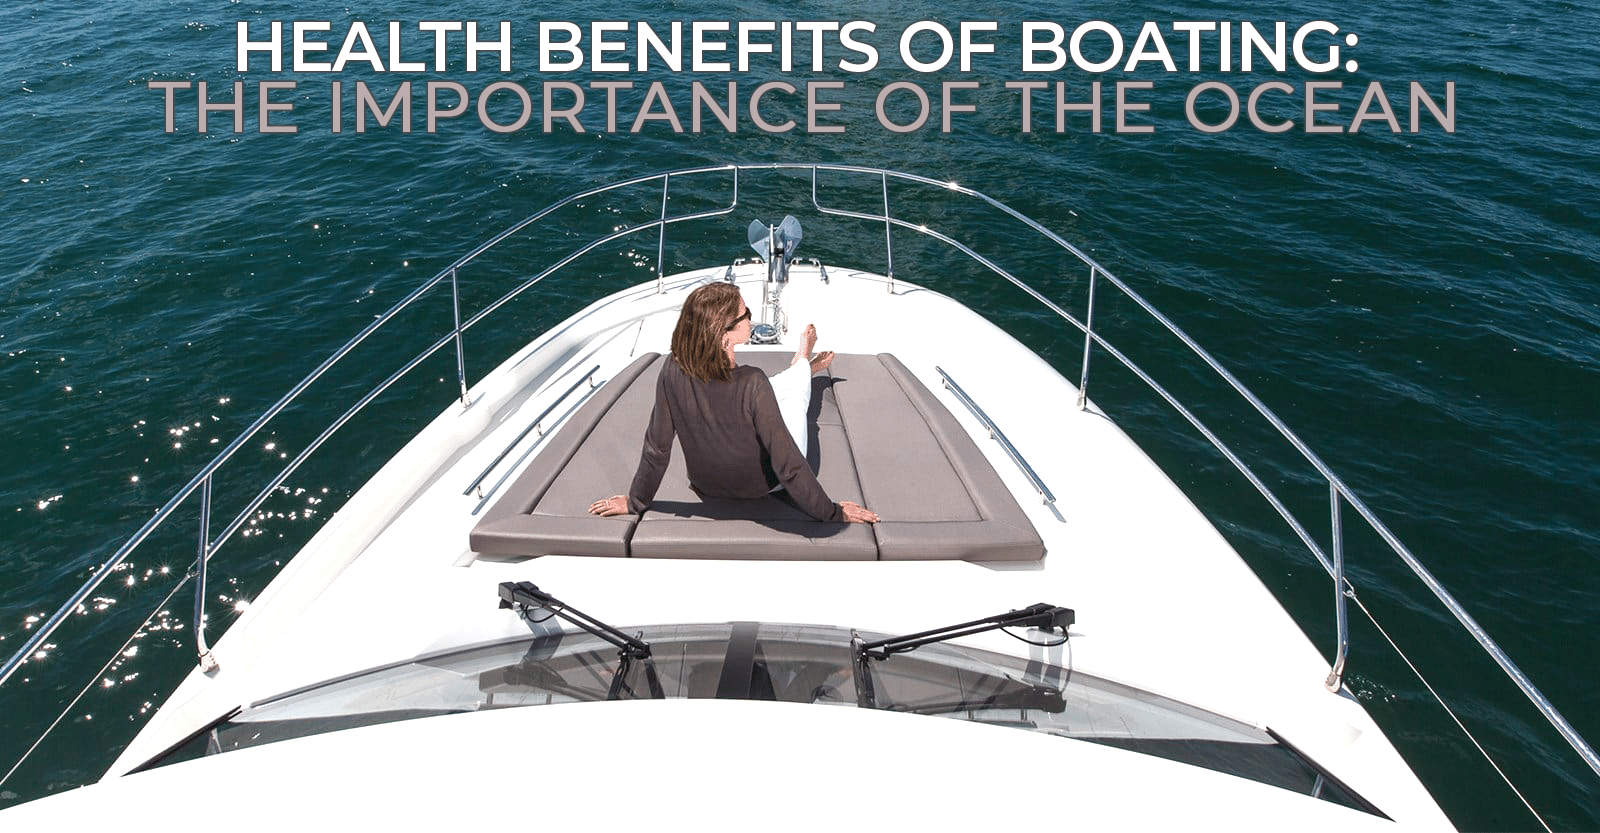 Health Benefits of Boating